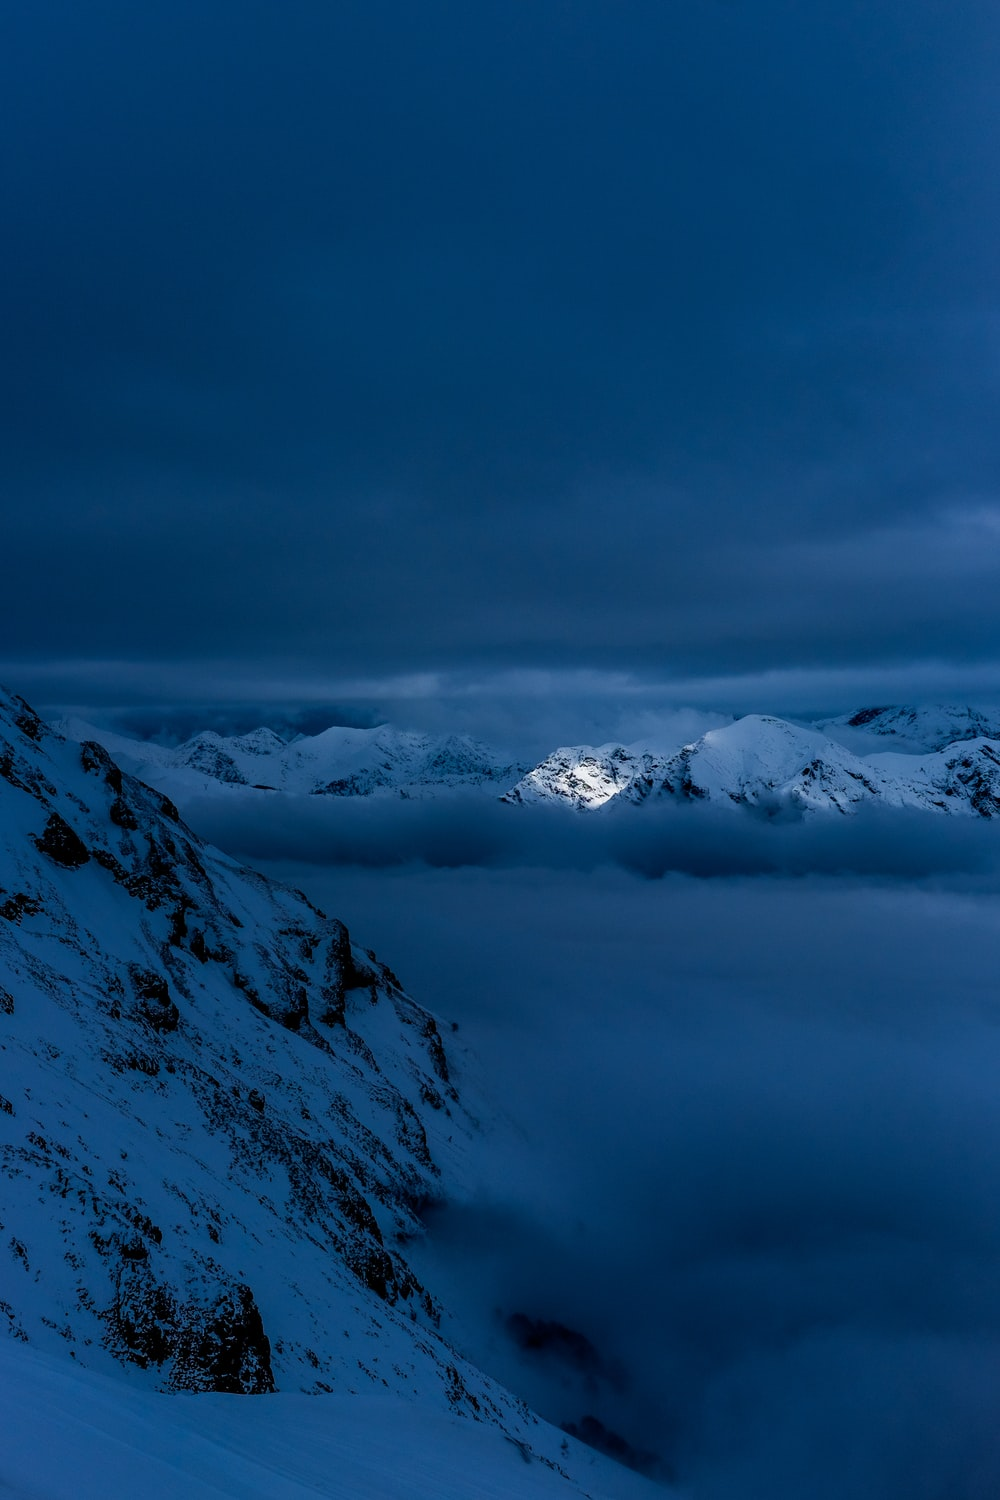 snow capped mountain covered in clouds